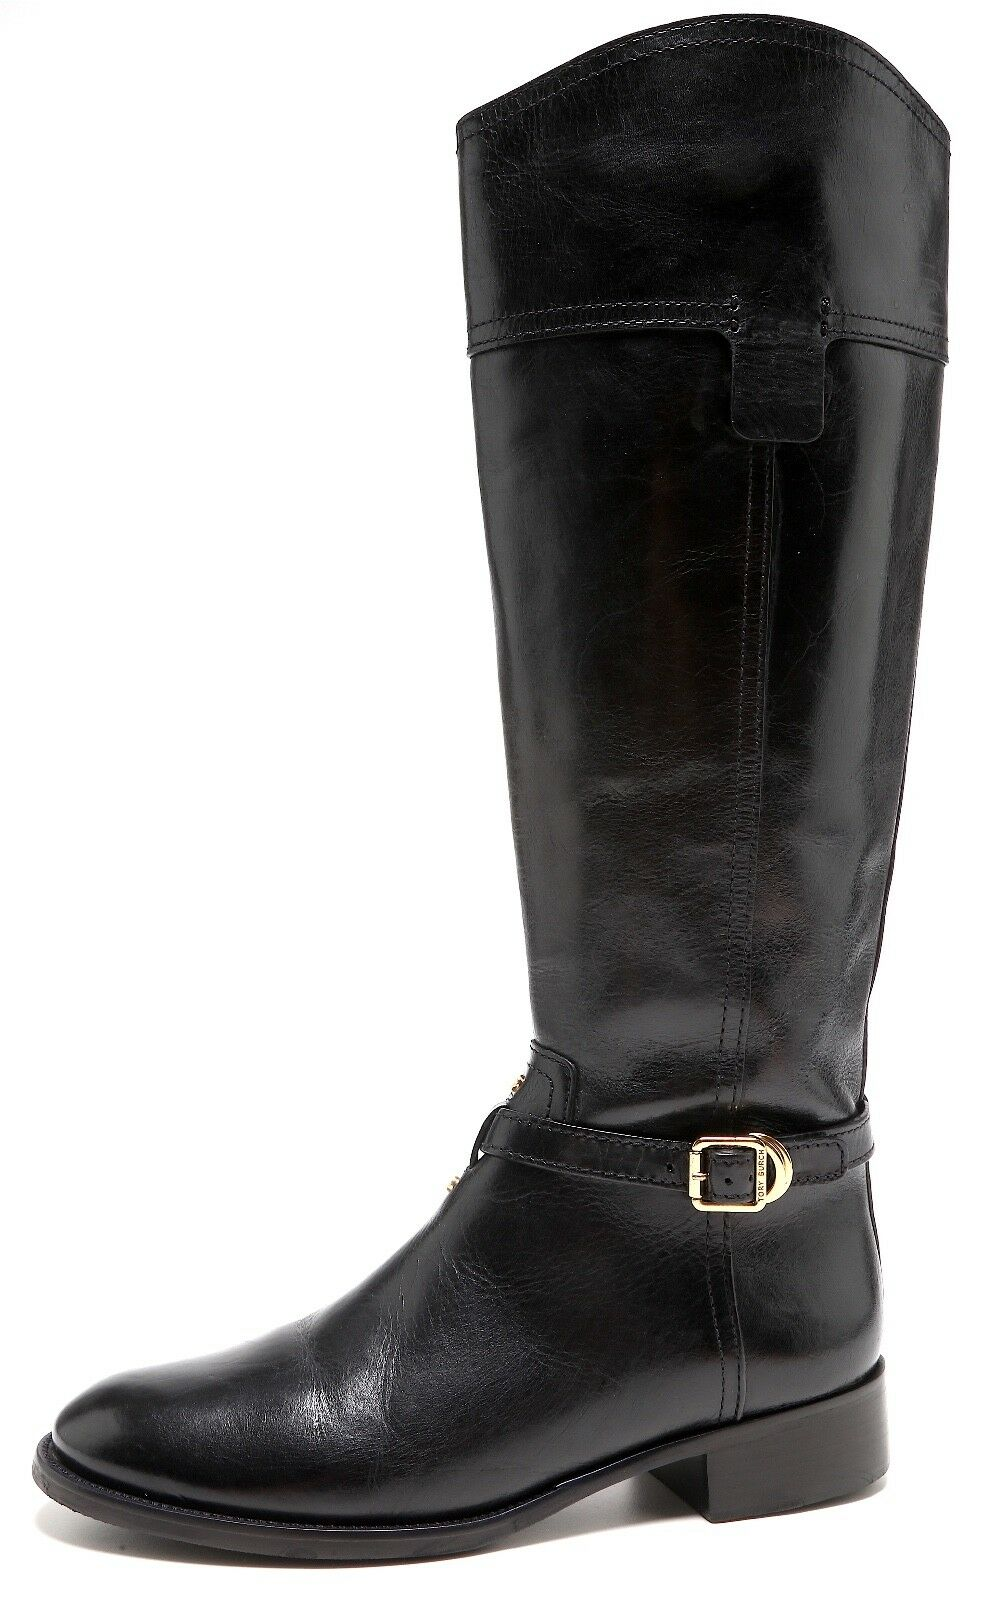 Tory Burch Eloise Leather Riding Boots Black Women Size 8.5M 1066